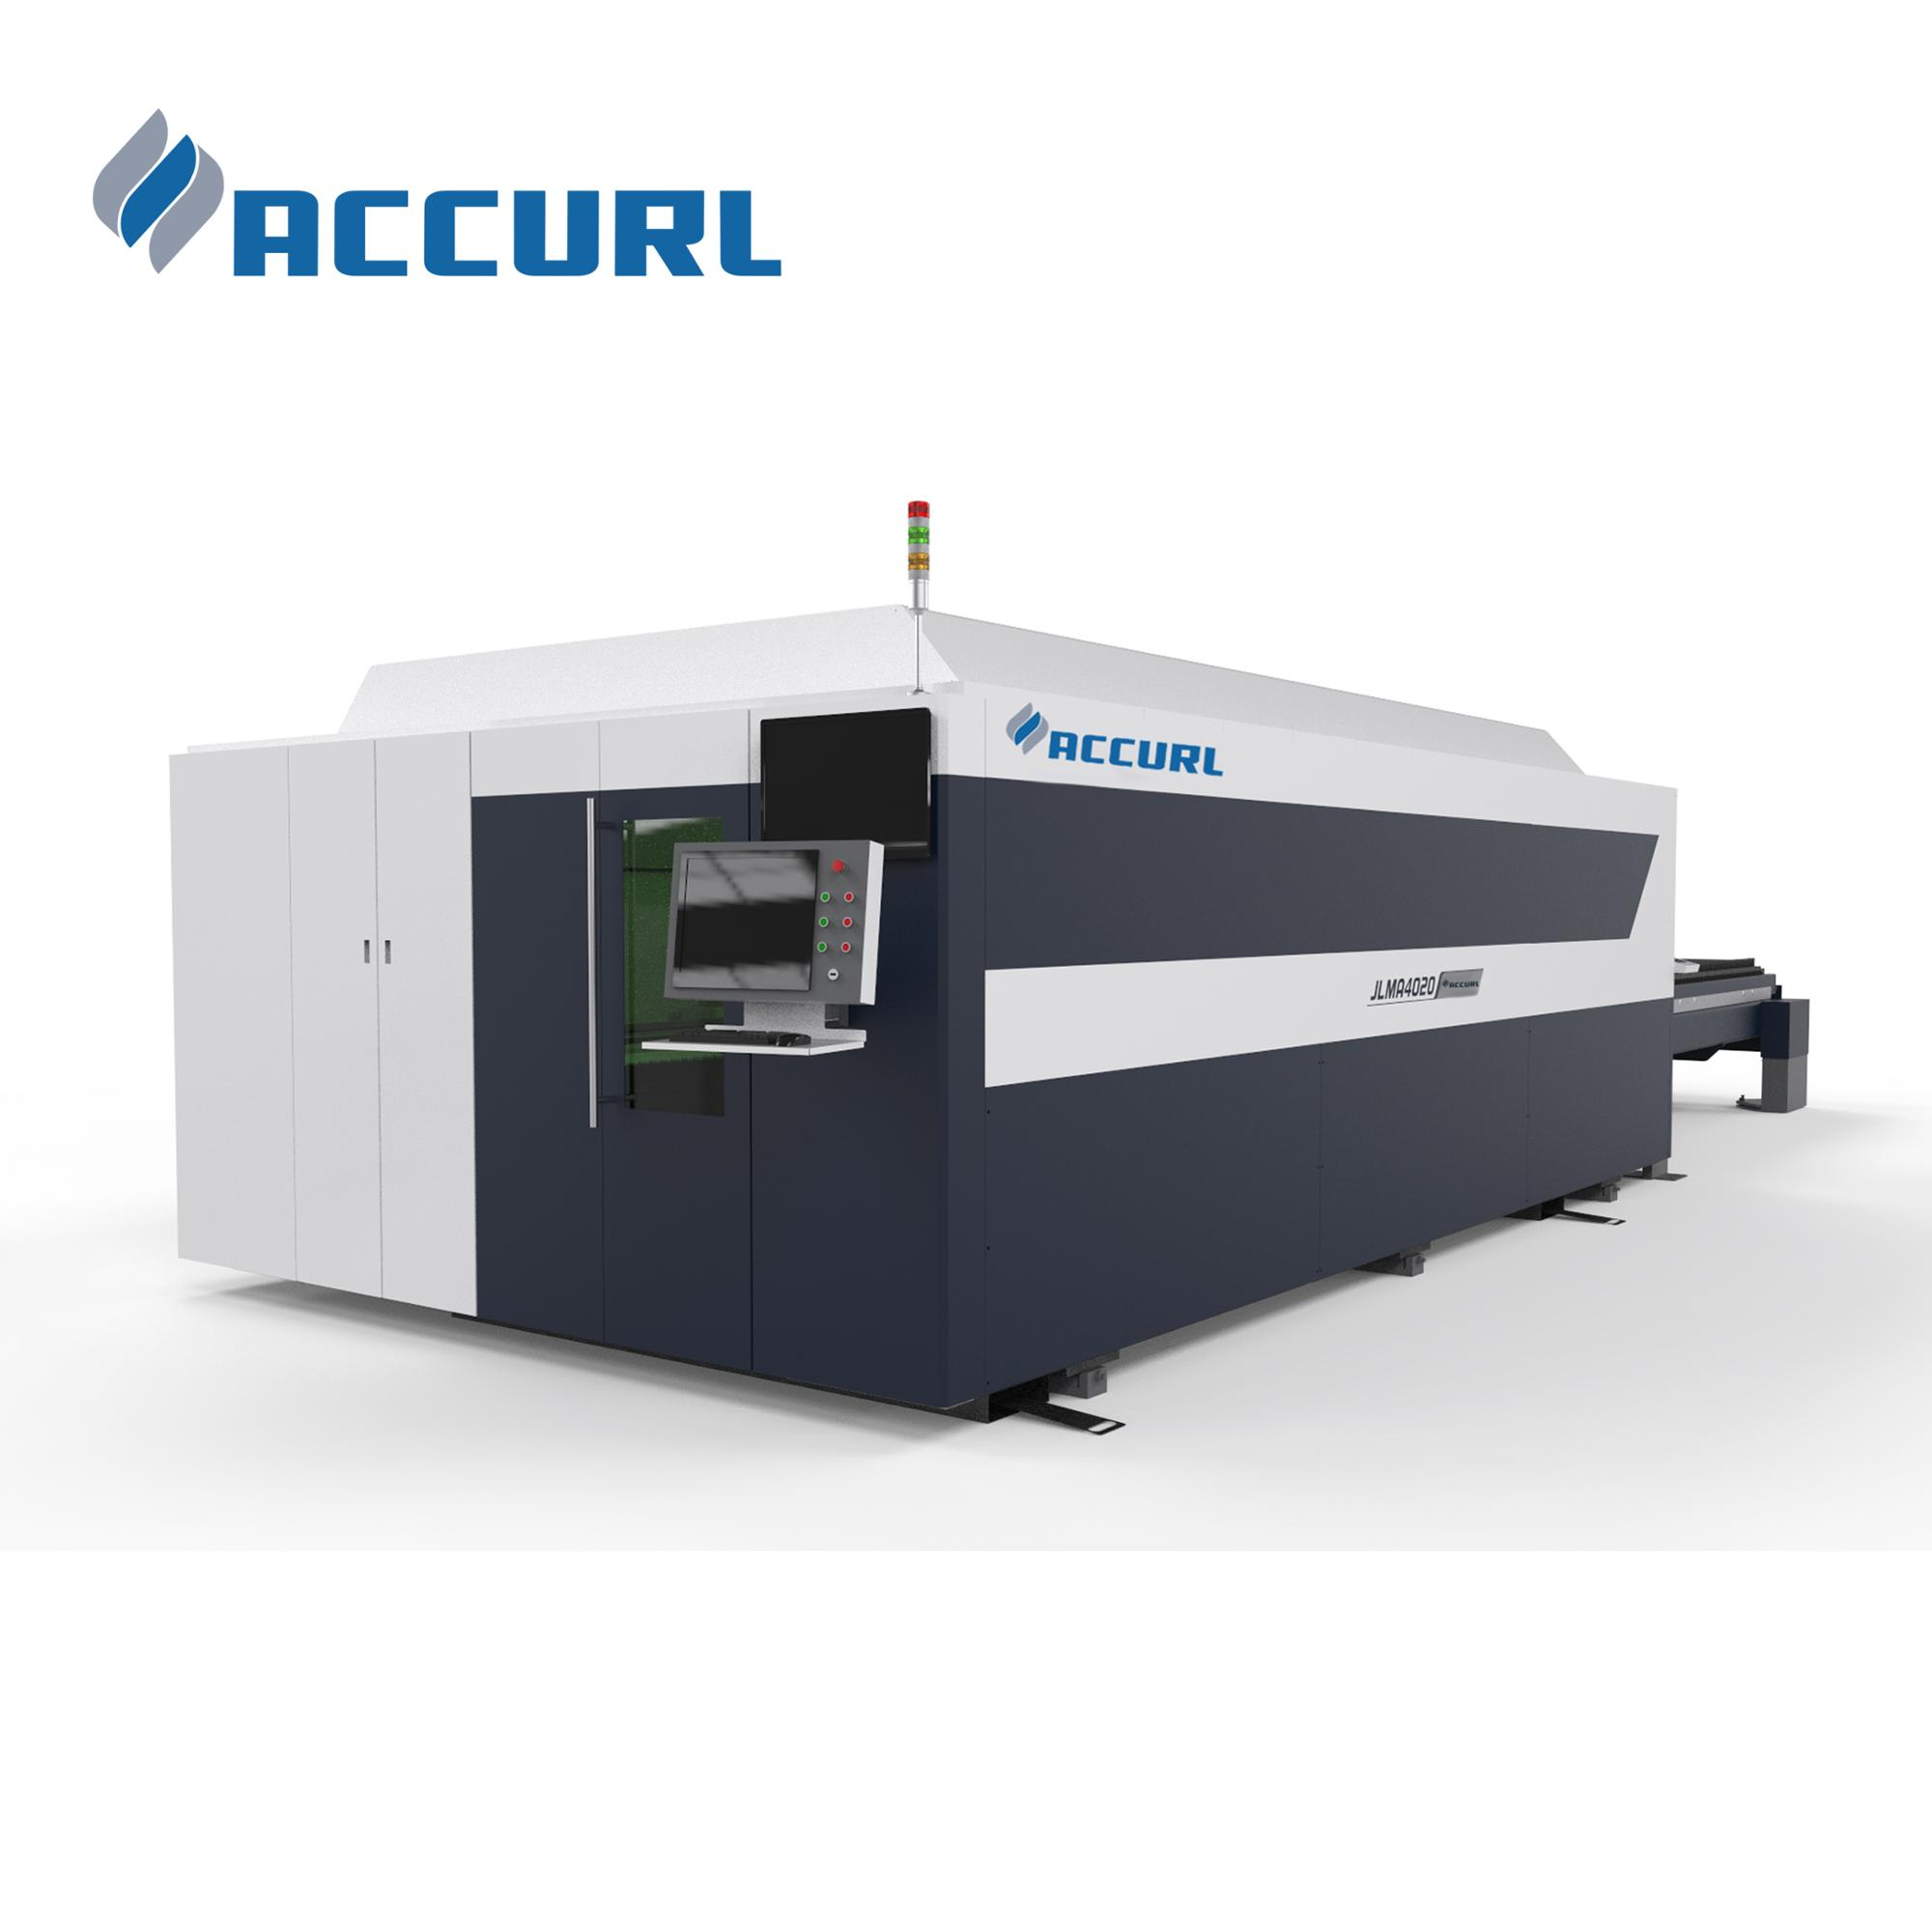 China Best Manufacturers,Accurl <strong>Laser</strong> 2 Years Warranty 500w 1000w 2000w Metal Fiber <strong>Laser</strong> Cutting Machine